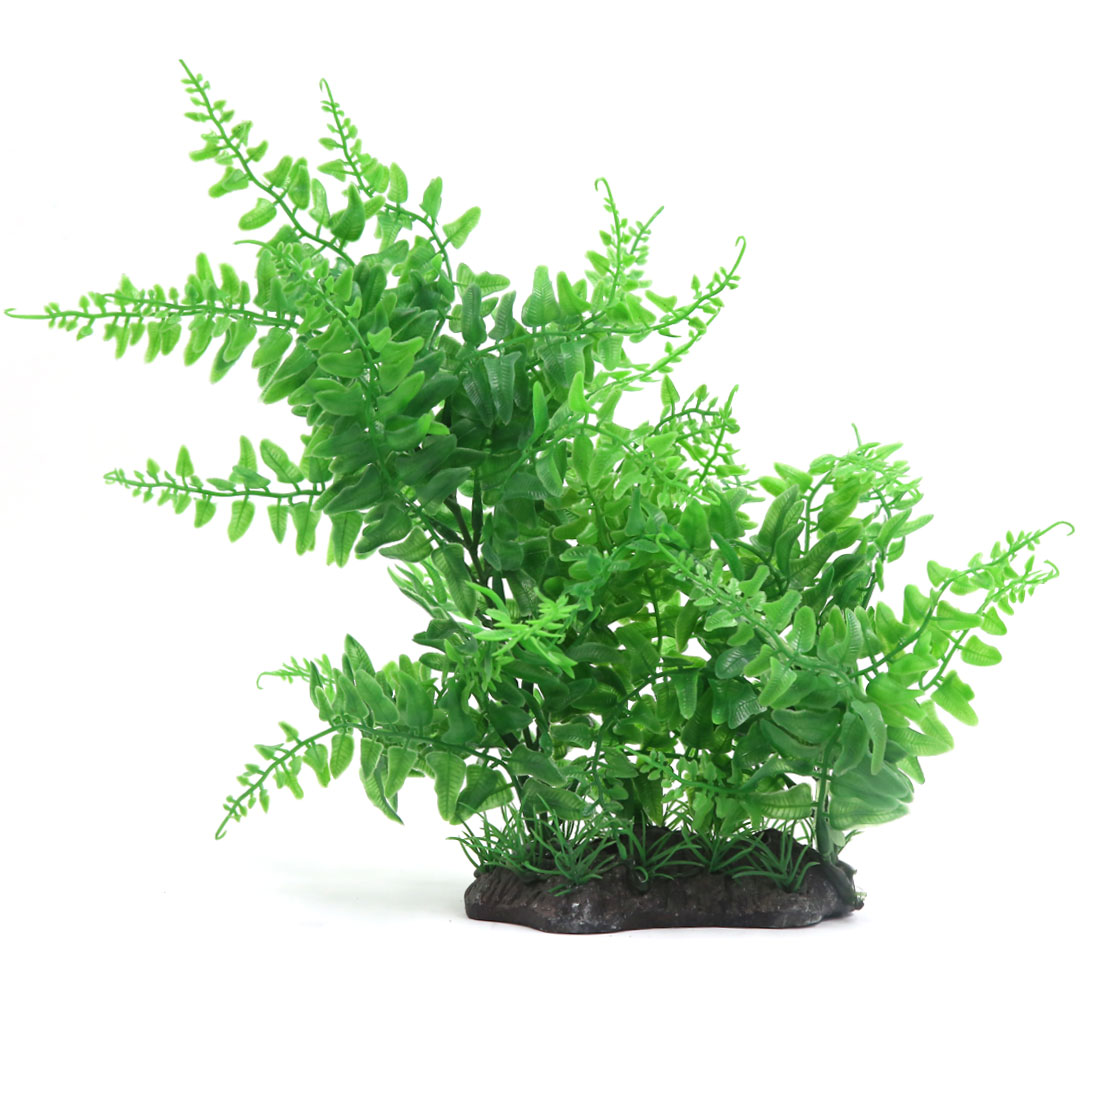 Green Aquarium Plastic Plant Fish Tank Decoration Aqua Landscape